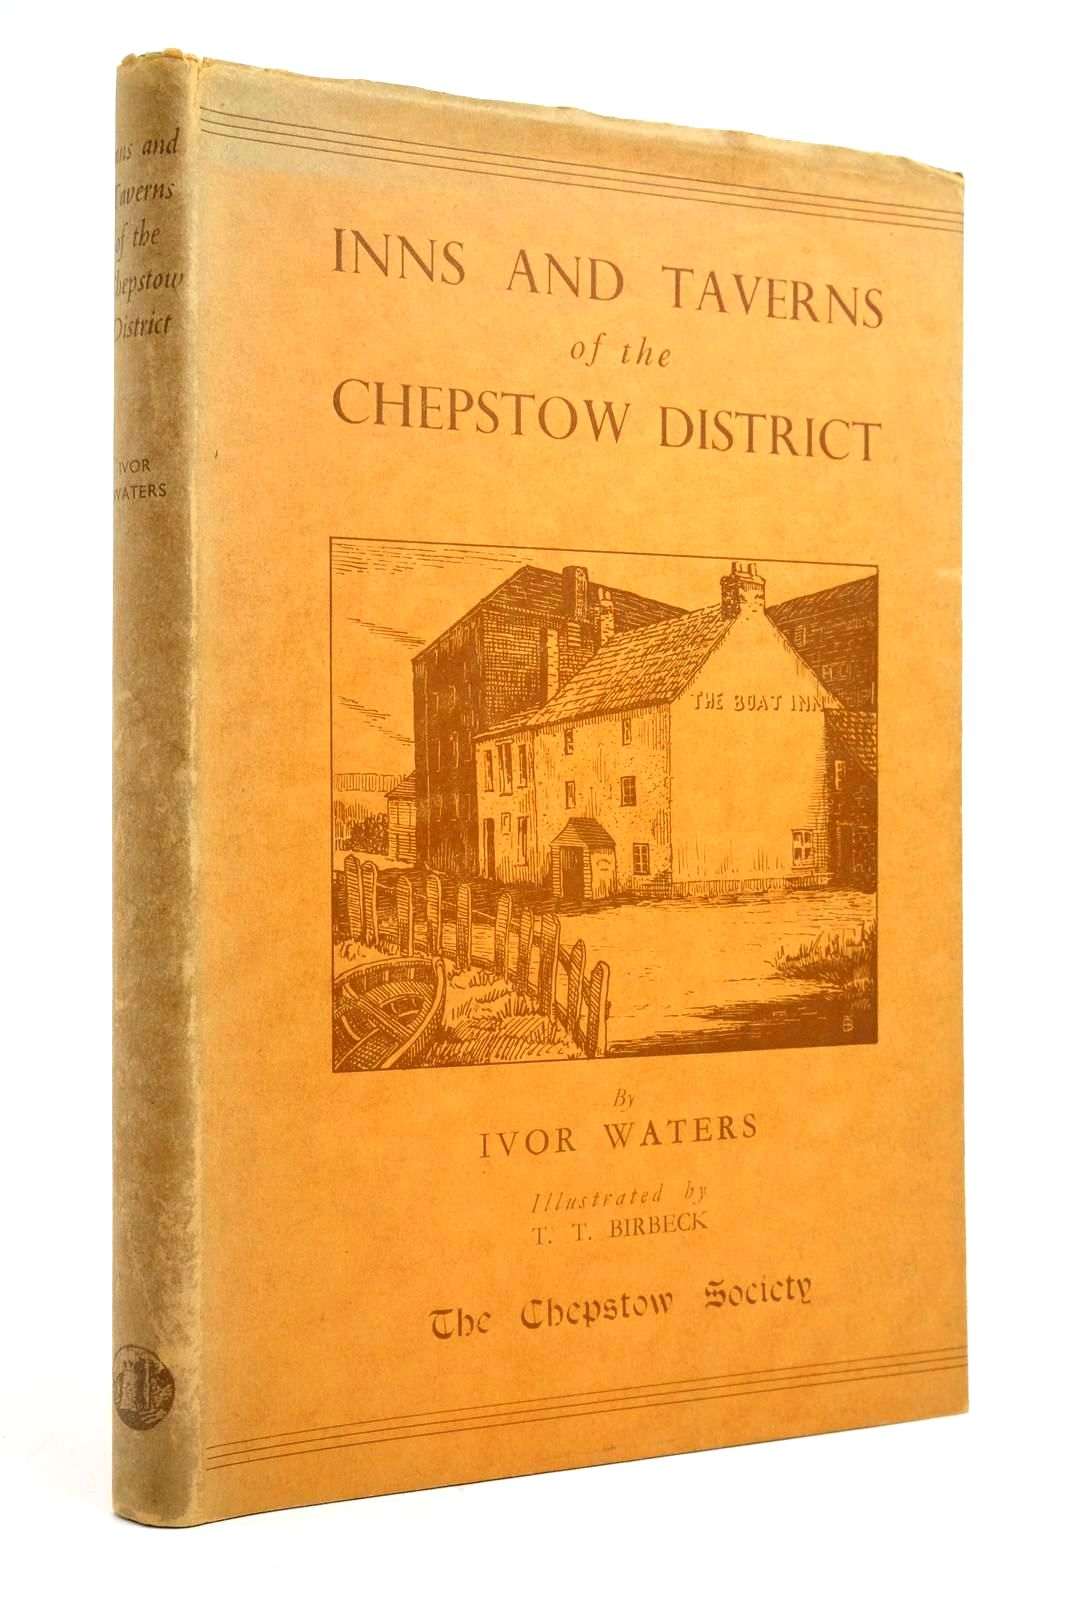 Photo of INNS AND TAVERNS OF THE CHEPSTOW DISTRICT- Stock Number: 2135503